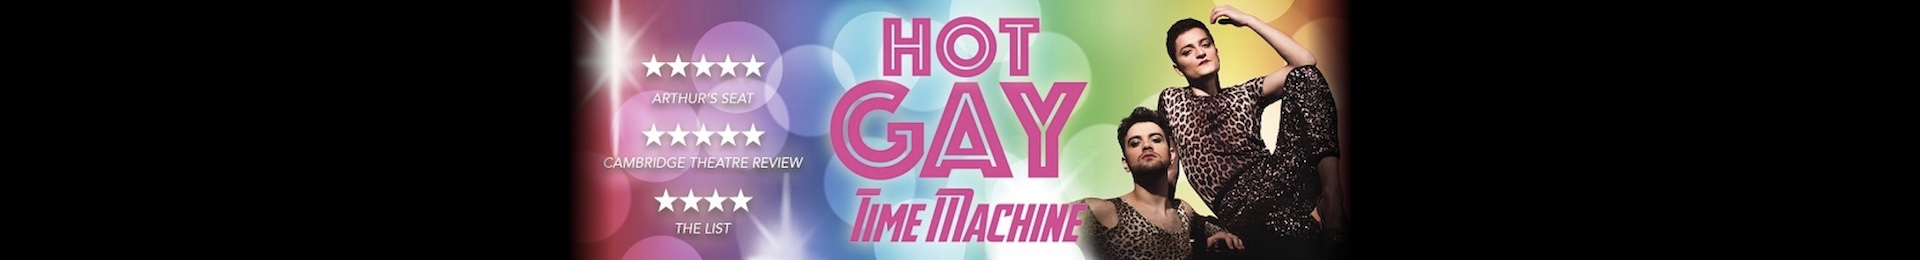 Hot Gay Time Machine At The Trafalgar Studios